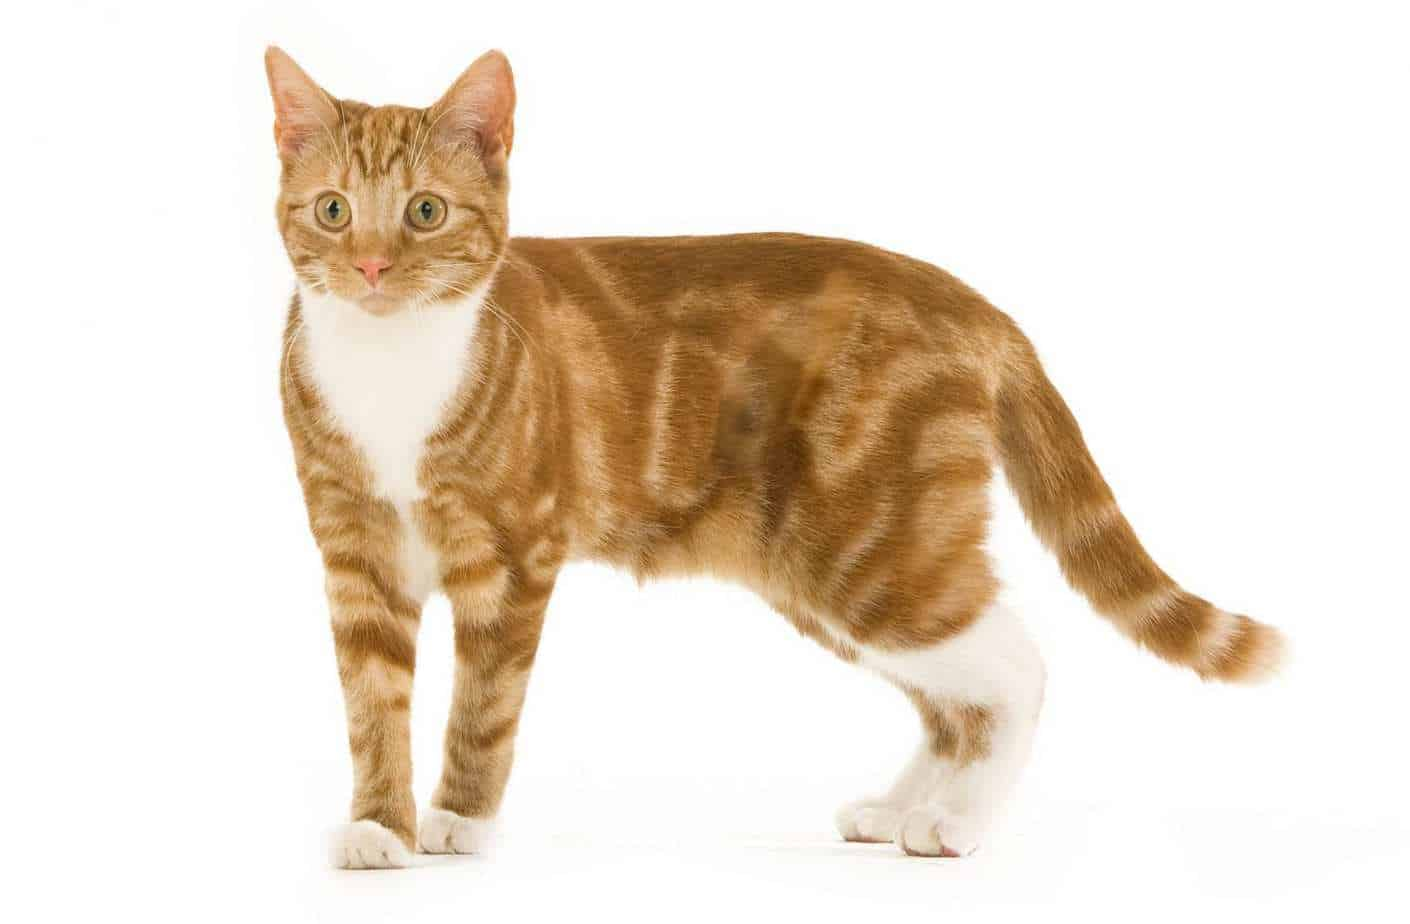 Tabby Cats - Colours, Markings and Breeds of Tabby Cat